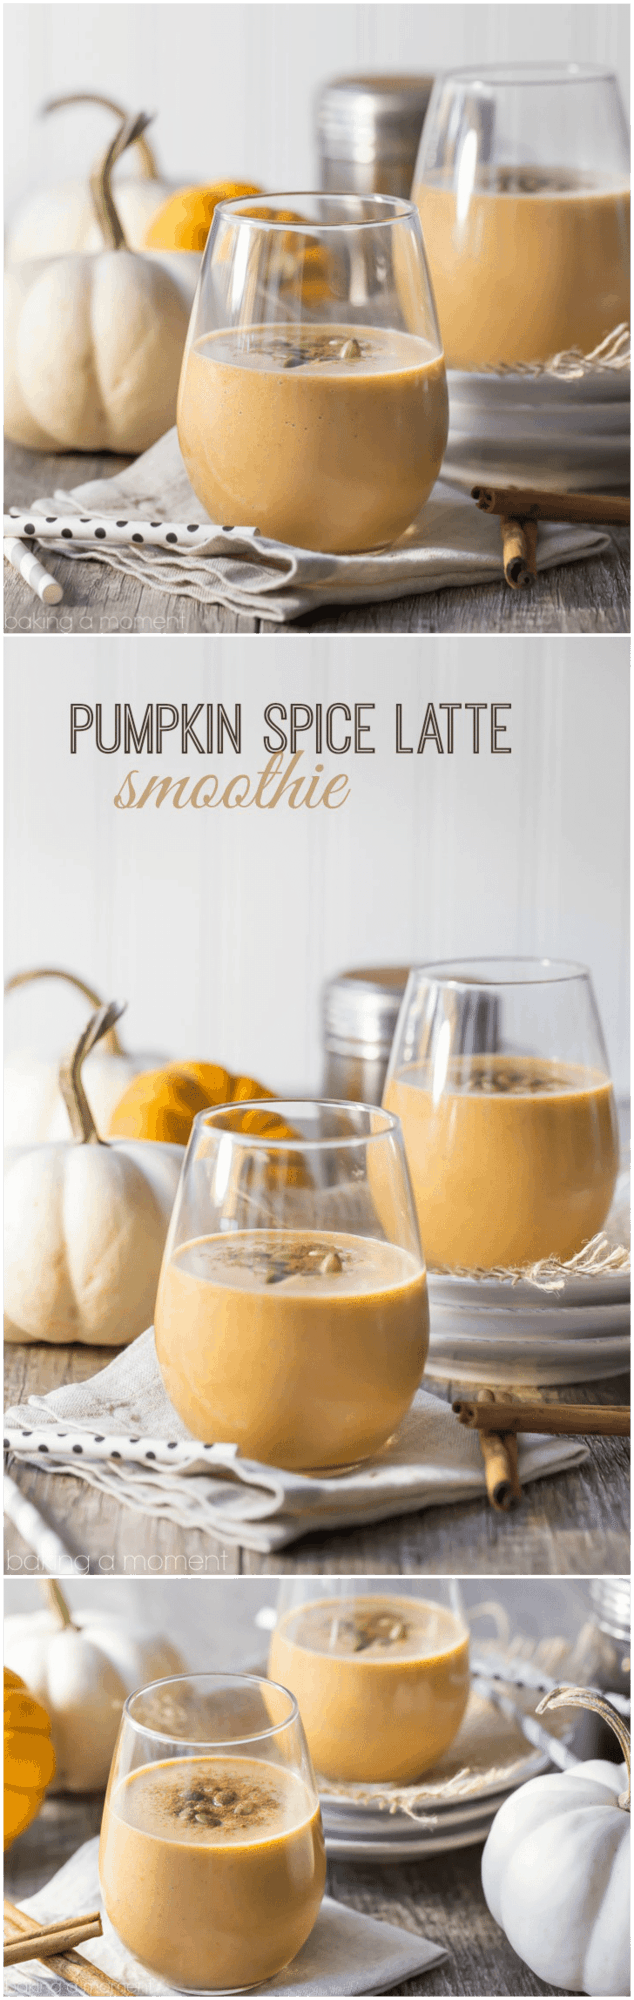 Pumpkin Spice Latte Smoothie- if you like PSL's then you'll LOVE this smoothie! Made with real pumpkin + an espresso kick that'll really jump start your morning! food drinks smoothies